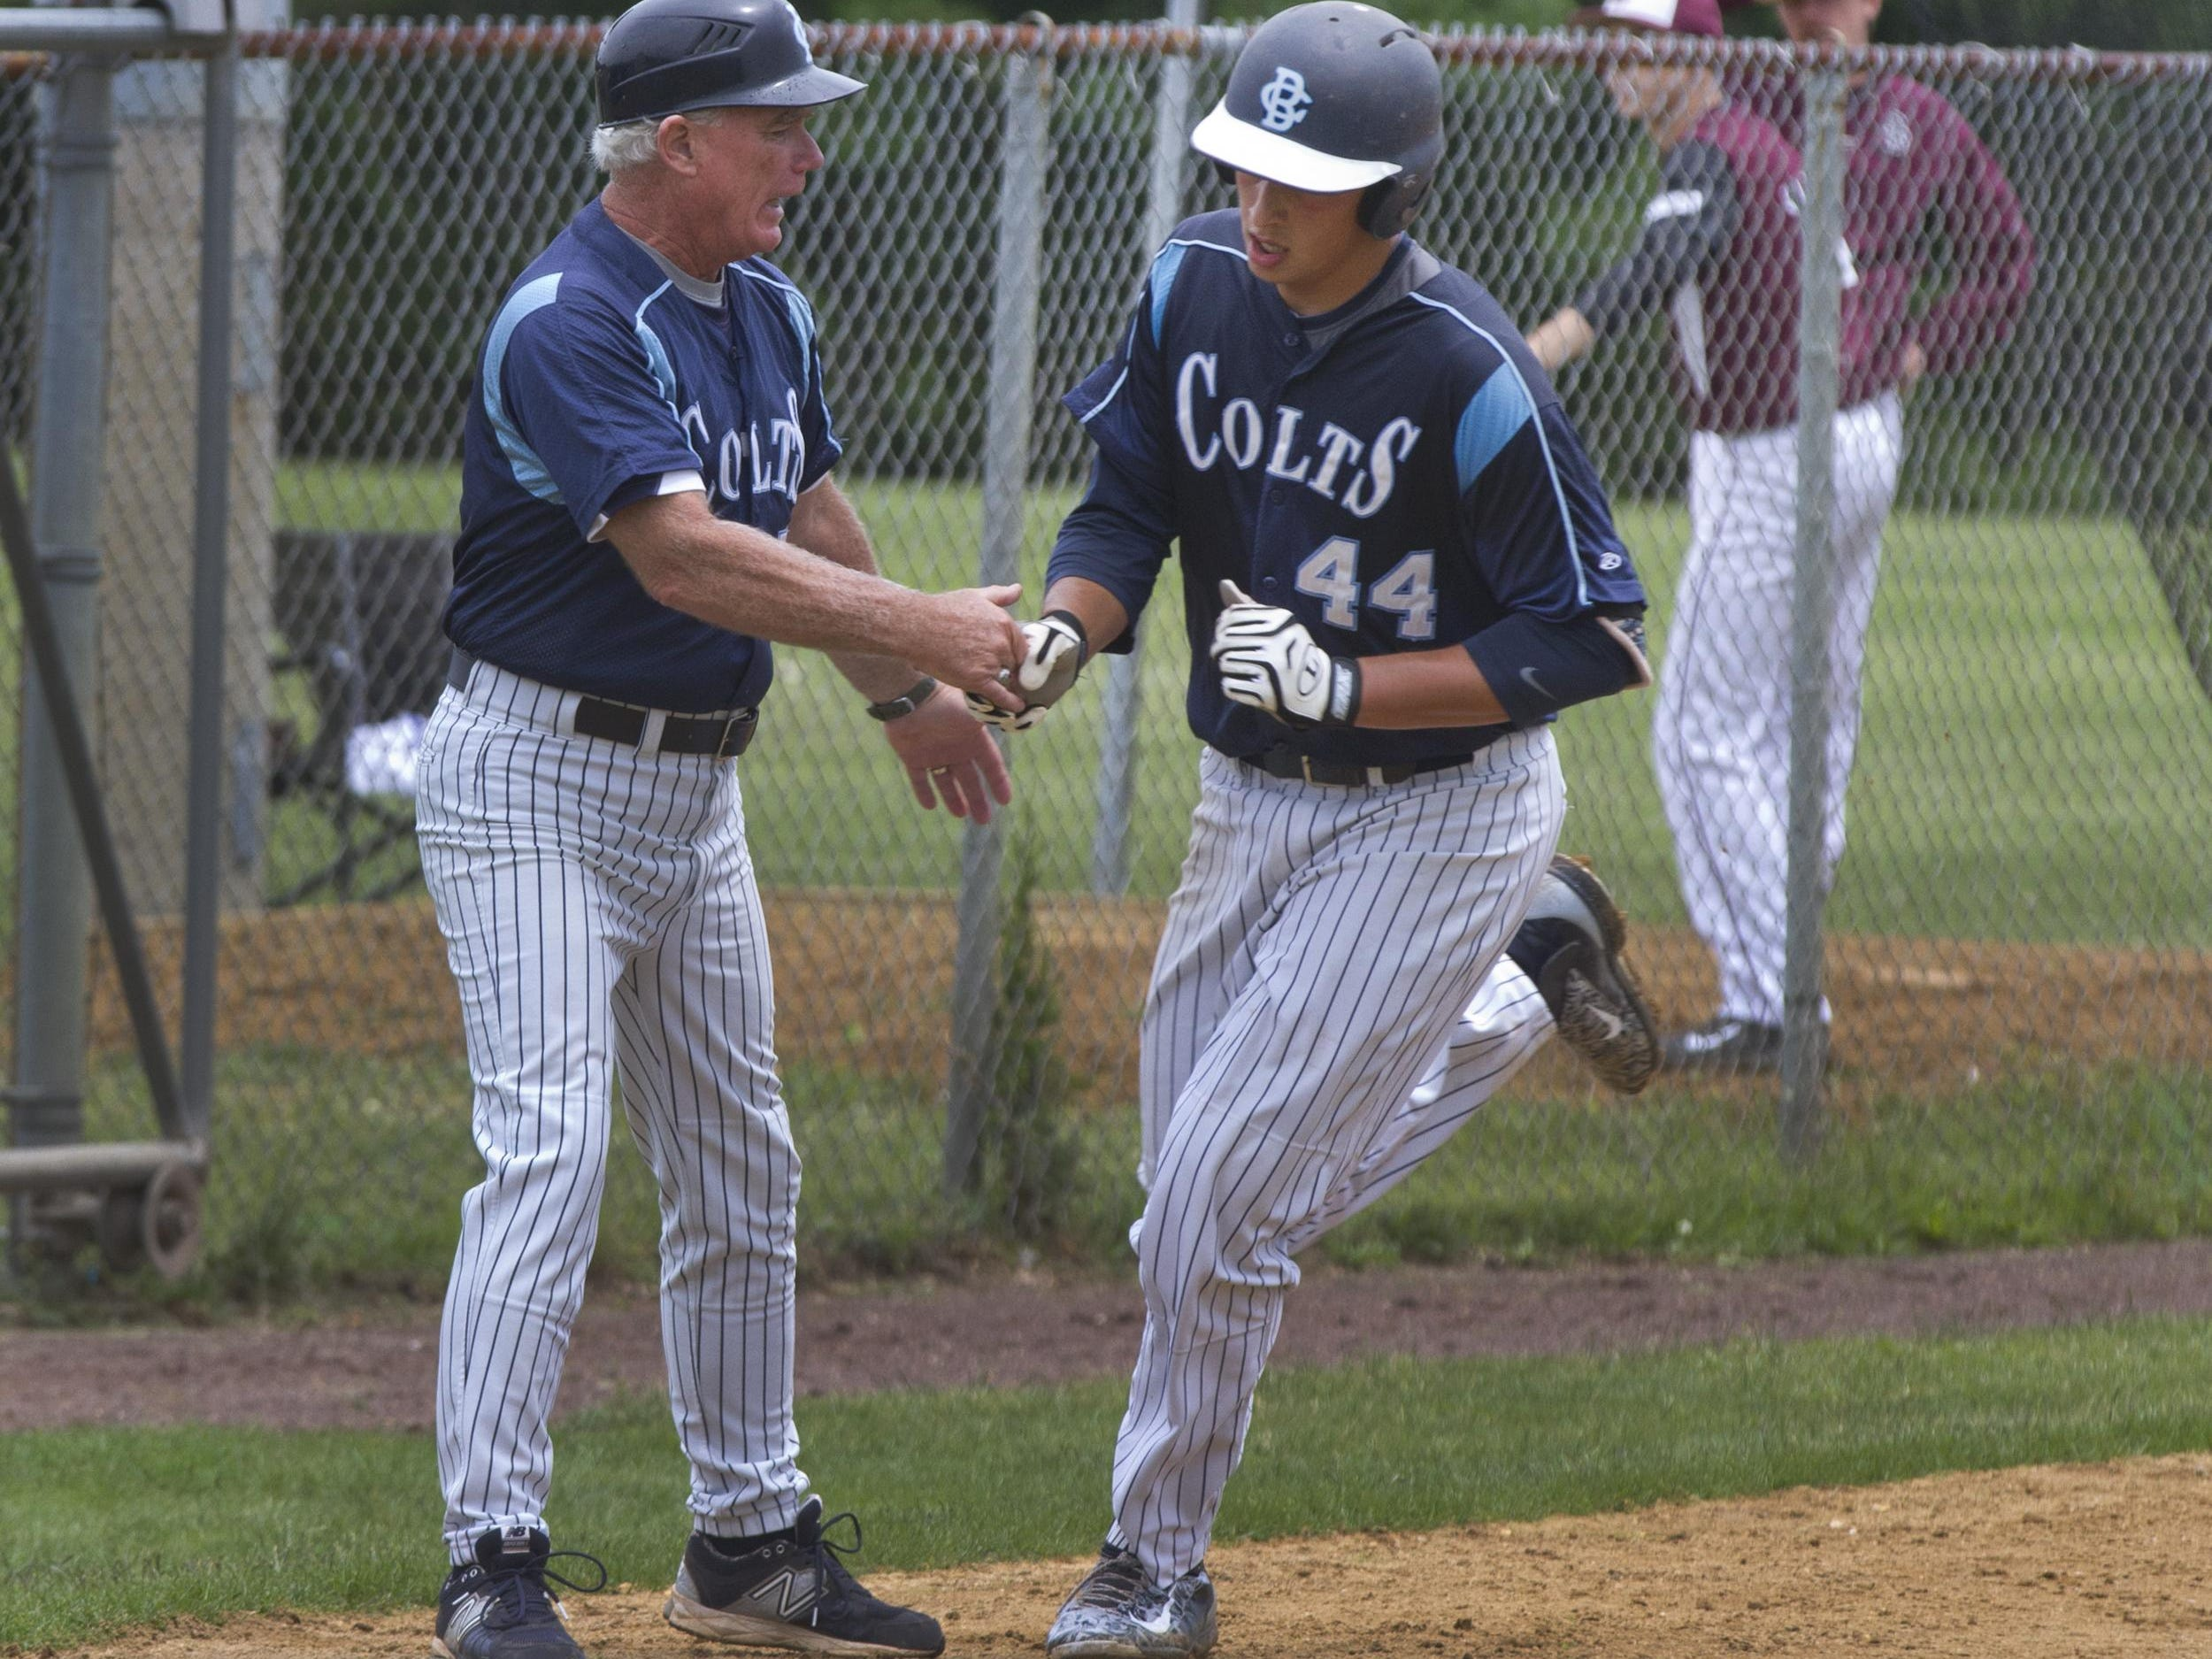 CBA coach Marty Kenney shakes hands with pitcher Luca Dalatri after he hits his team's second home run of game. Christian Brothers Academy vs Don Bosco NJSIAA Non-Public A Baseball Championship in Toms River, NJ on June 6 2015. Peter Ackerman/Staff Photographer